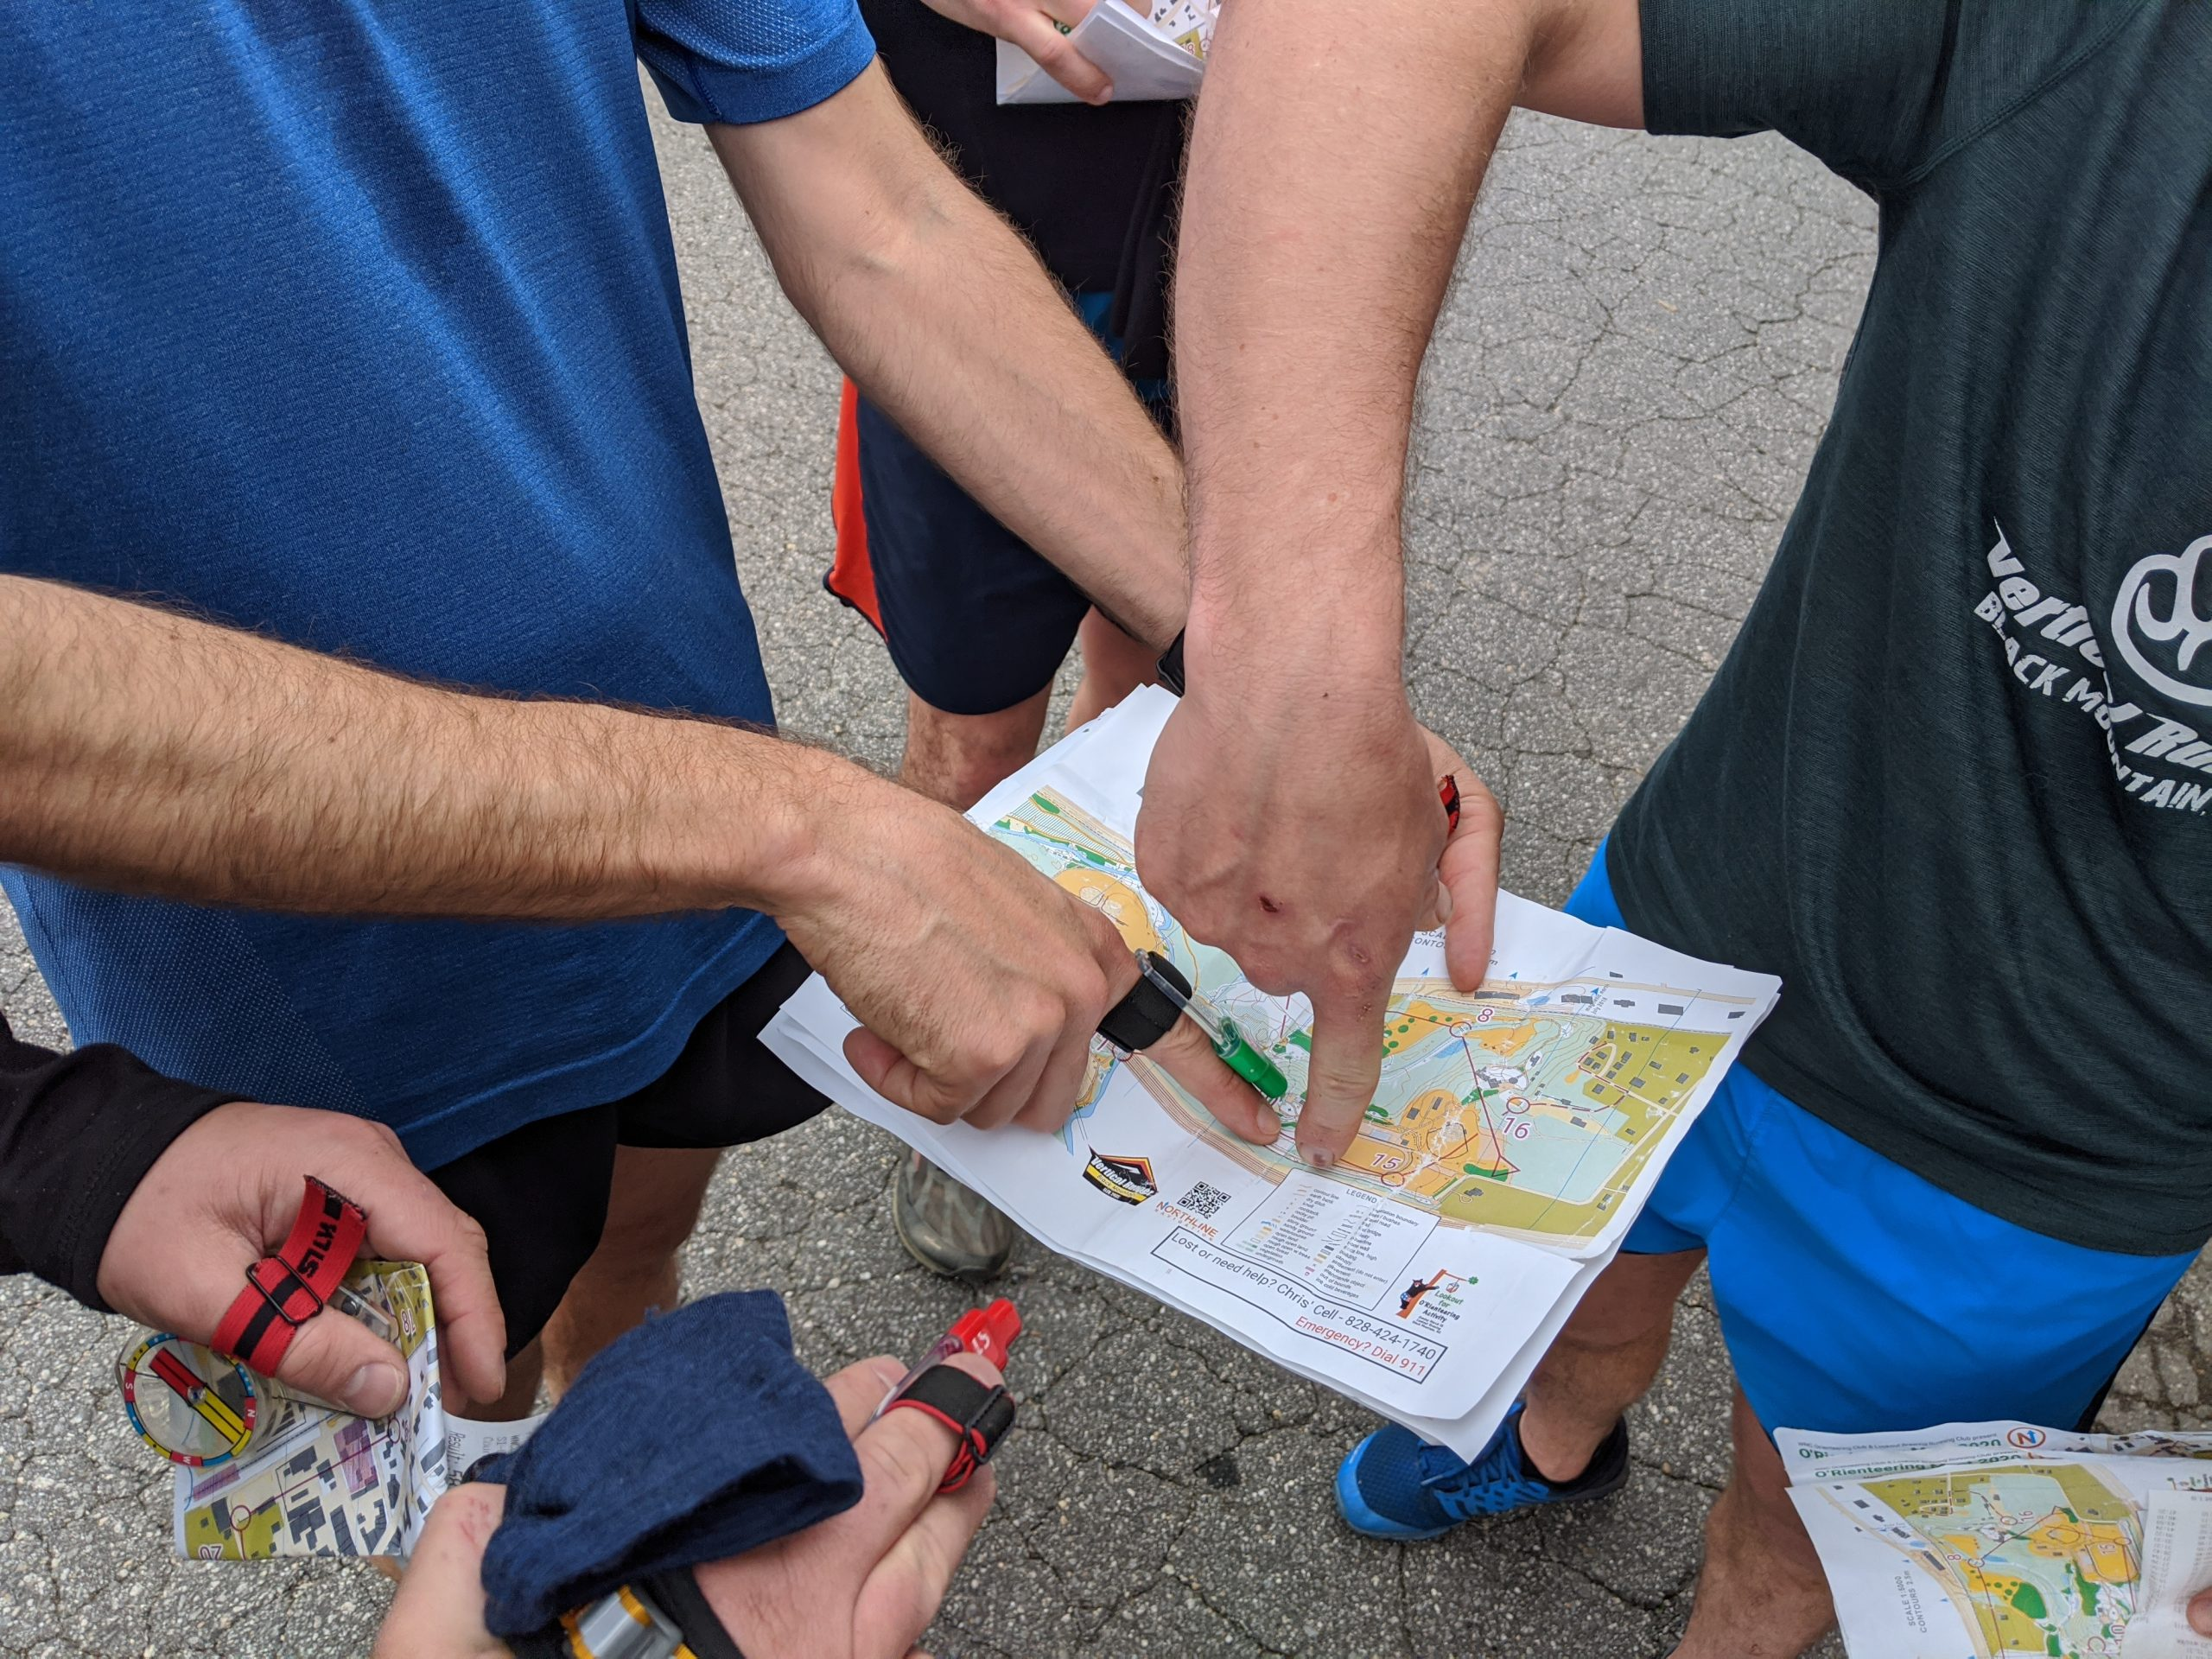 Compulsory map pointing picture